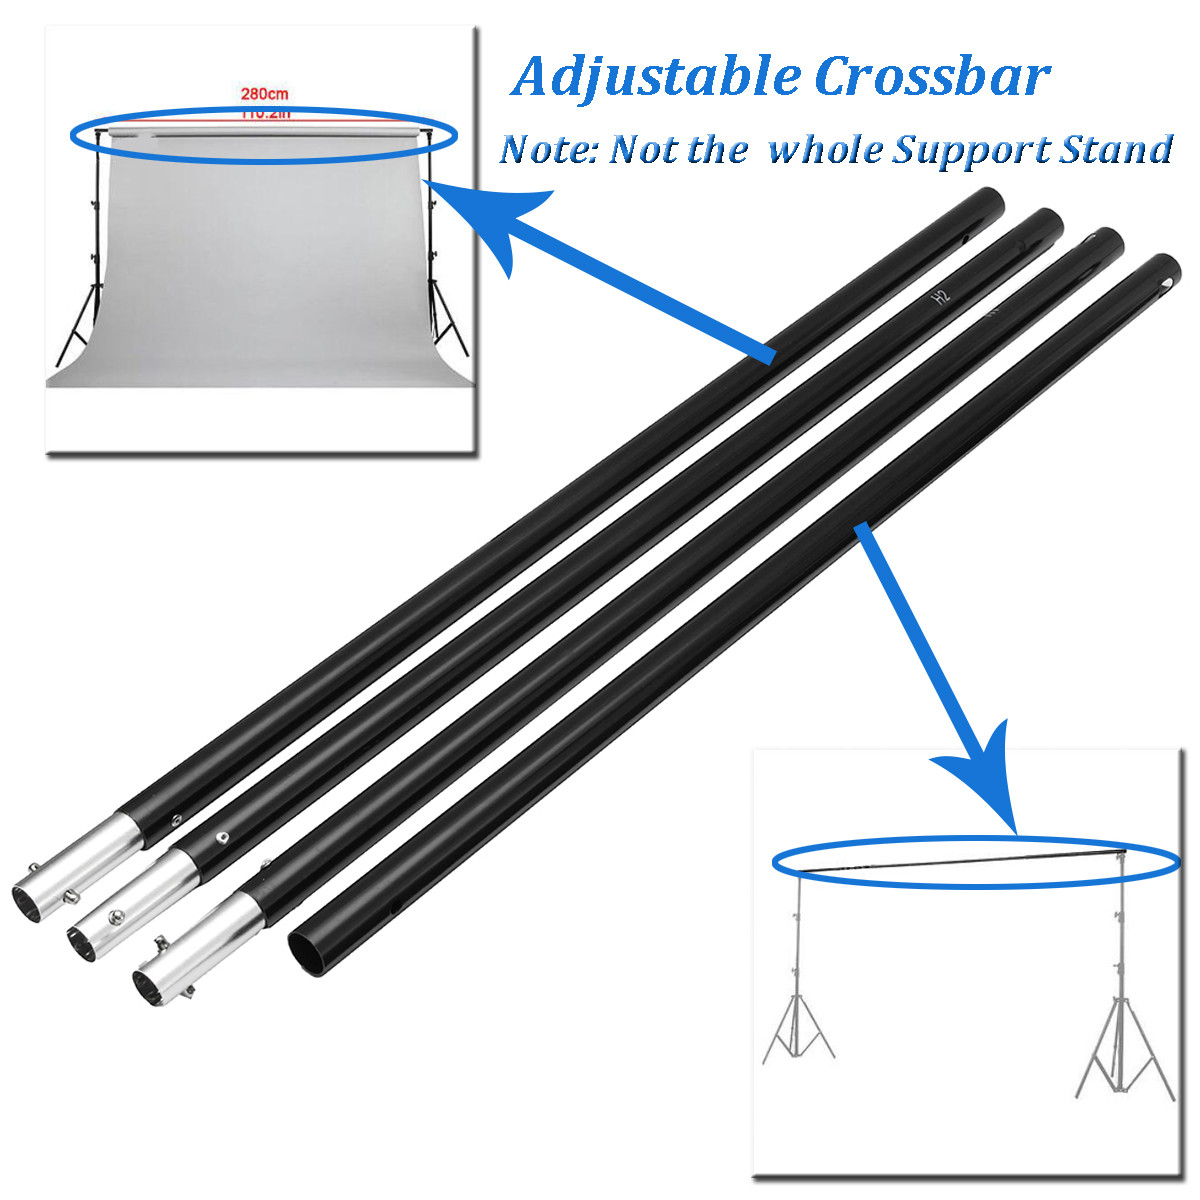 2.8m/9.2ft Adjustable Crossbar for Photography Background Support Photo Backdrop Stand System for Photo Studio photo studio 2 6 3m adjustable background support stand photo backdrop crossbar kit photography equipment